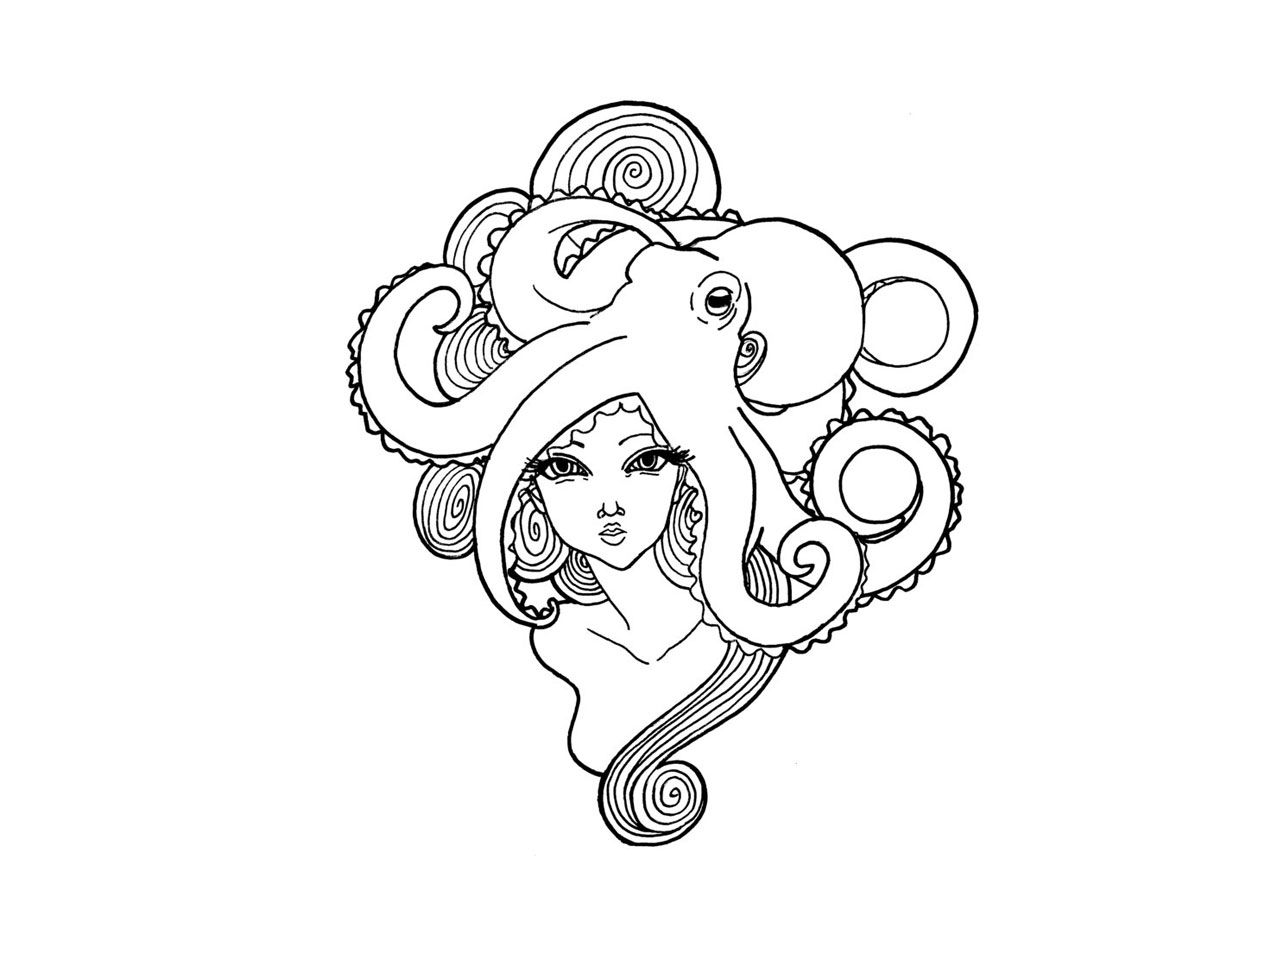 Octopus Tattoos Designs Ideas And Meaning